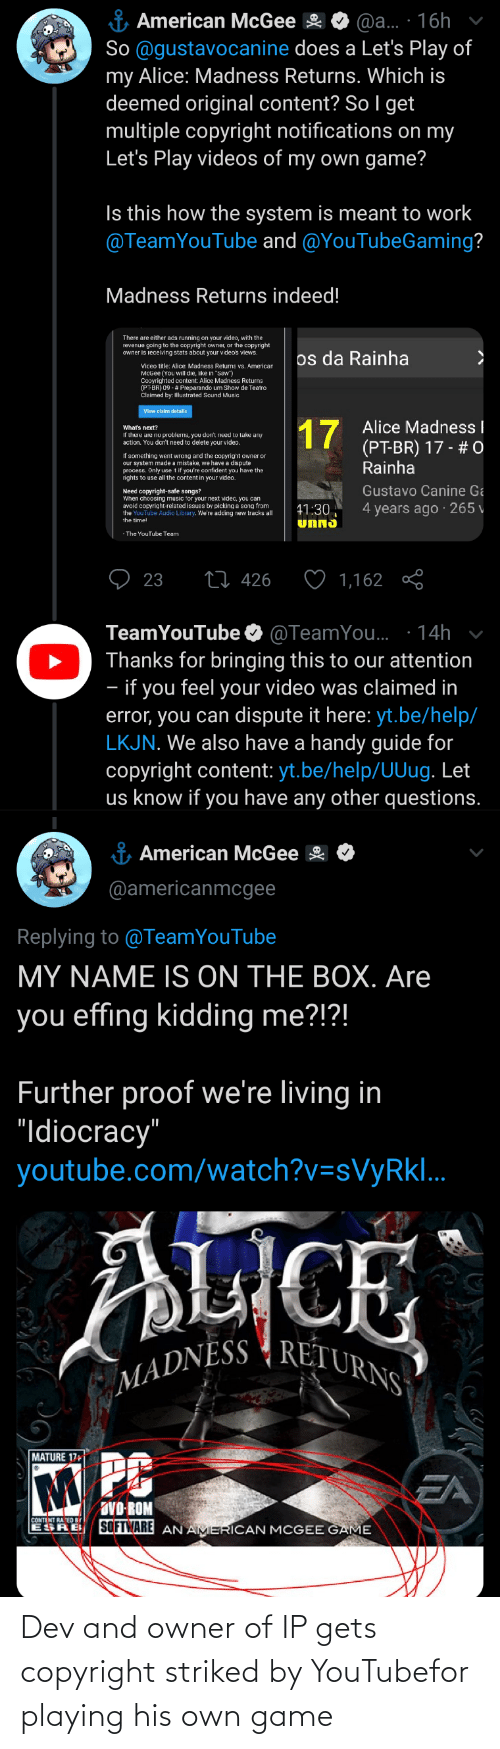 """Music, Saw, and Videos: & American McGee  So @gustavocanine does a Let's Play of  my Alice: Madness Returns. Which is  deemed original content? So I get  multiple copyright notifications on my  Let's Play videos of my own game?  @a.. · 16h  Is this how the system is meant to work  @TeamYouTube and @YouTubeGaming?  Madness Returns indeed!  There are either ads running on your video, with the  revenue going to the copyright owner, or the copyright  owner is receiving stats about your video's views.  os da Rainha  Viceo title: Alice: Madness Returns vs. American  MCGee (You will die, like in """"Saw"""")  Conyrighted content: Alice Madness Returns  (PT-BR) 09 - # Preparando um Show de Teatro  Claimed by: Illustrated Sound Music  View claim details  17  Alice Madness I  What's next?  If there are no problems, you don't need to take any  action. You dcn't need to delete your video.  (PT-BR) 17 - # 0  Rainha  If something went wrong ard the copyrignt owner or  our system made a mistake, we have a dispute  procece, Only ue it if you're confident you have the  rights to use all the cortent in your video.  Gustavo Canine Ga  Need copyright-safe songs?  When choosing music for your next video, you can  avoid copyright-related issues by picking a song from  the YouTube Audio Library. We're adding new tracks all  4 years ago · 265 v  41:30  UNNS  The YouTube Team  27 426  23  1,162  TeamYouTube O @TeamYou. · 14h  Thanks for bringing this to our attention  - if you feel your video was claimed in  error, you can dispute it here: yt.be/help/  LKJN. We also have a handy guide for  copyright content: yt.be/help/UUug. Let  us know if you have any other questions.  i American McGee  @americanmcgee  Replying to @TeamYouTube  MY NAME IS ON THE BOX. Are  you effing kidding me?!?!  Further proof we're living in  """"Idiocracy""""  youtube.com/watch?v=sVyRkl..  ICE  MADNESS { RETURNS  MATURE 17+  M PC  EA  DVO-ROM  SOFTWARE AN AMERICAN MCGEE GAME  CONTENT RA ED Br  ESRE Dev and owner of IP gets copyri"""